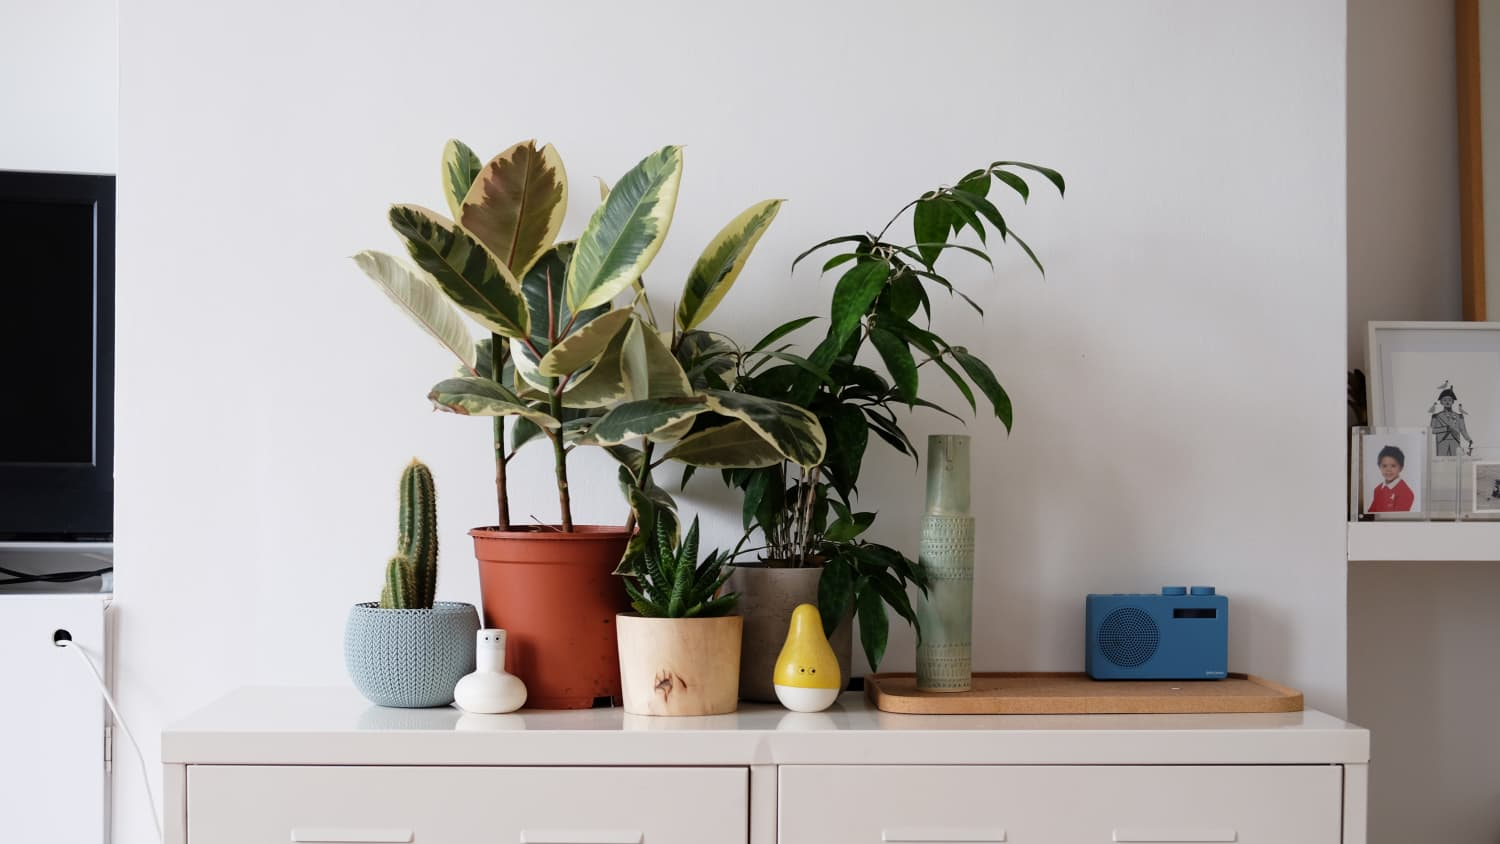 Low Maintenance House Plants - How Often Should You Water